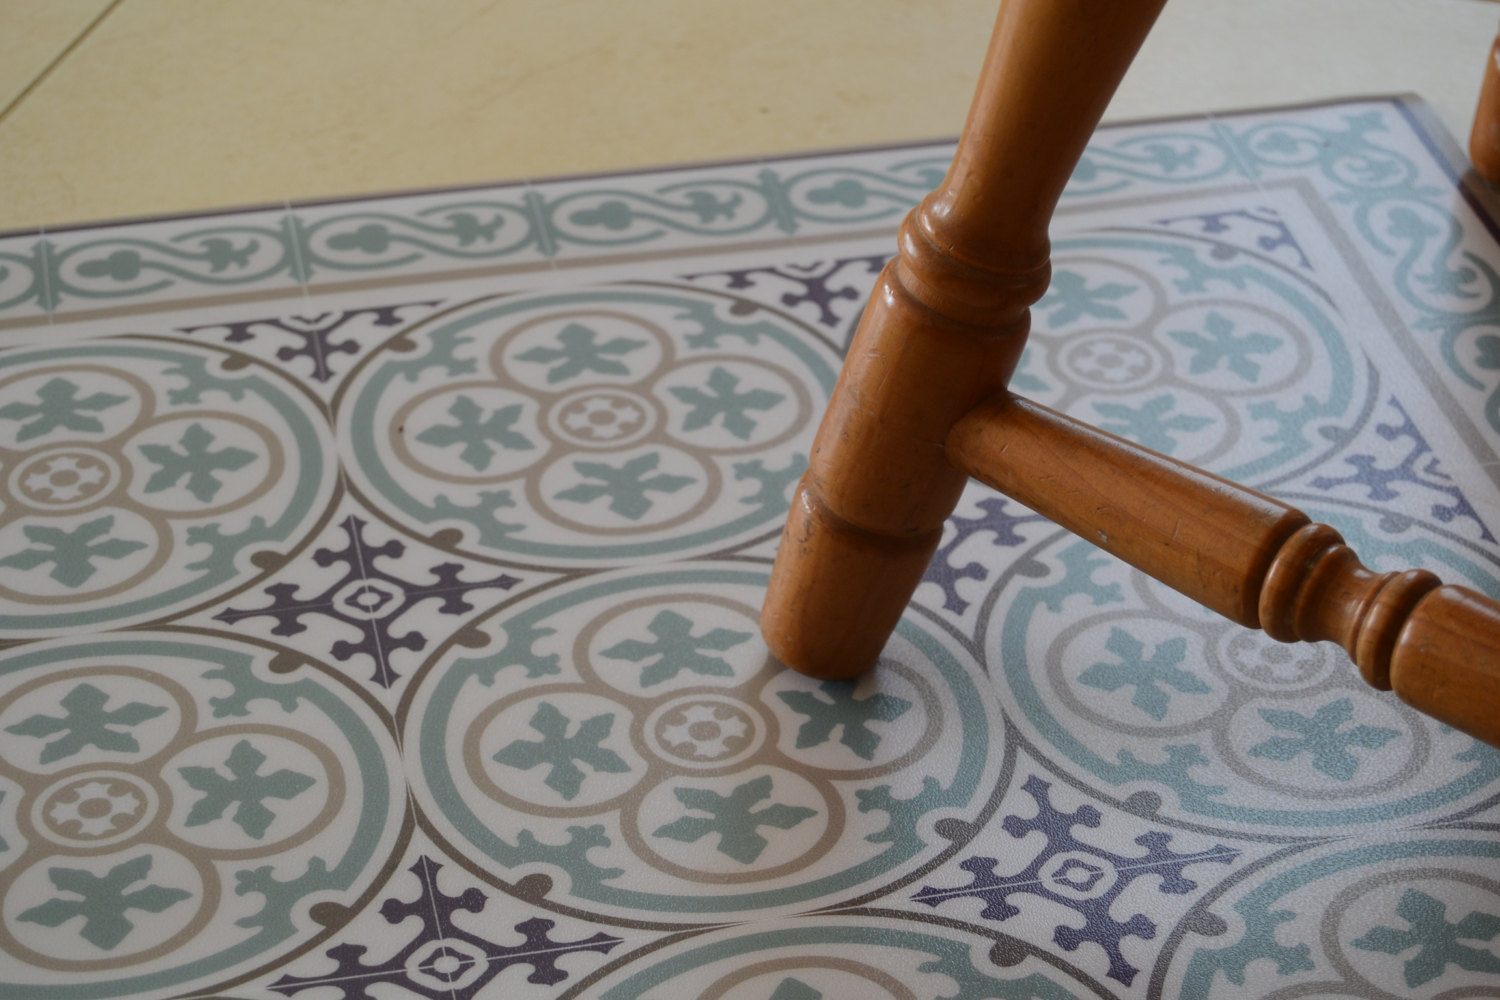 Decorative Vinyl Floors : Pvc vinyl mat tiles pattern decorative linoleum rug